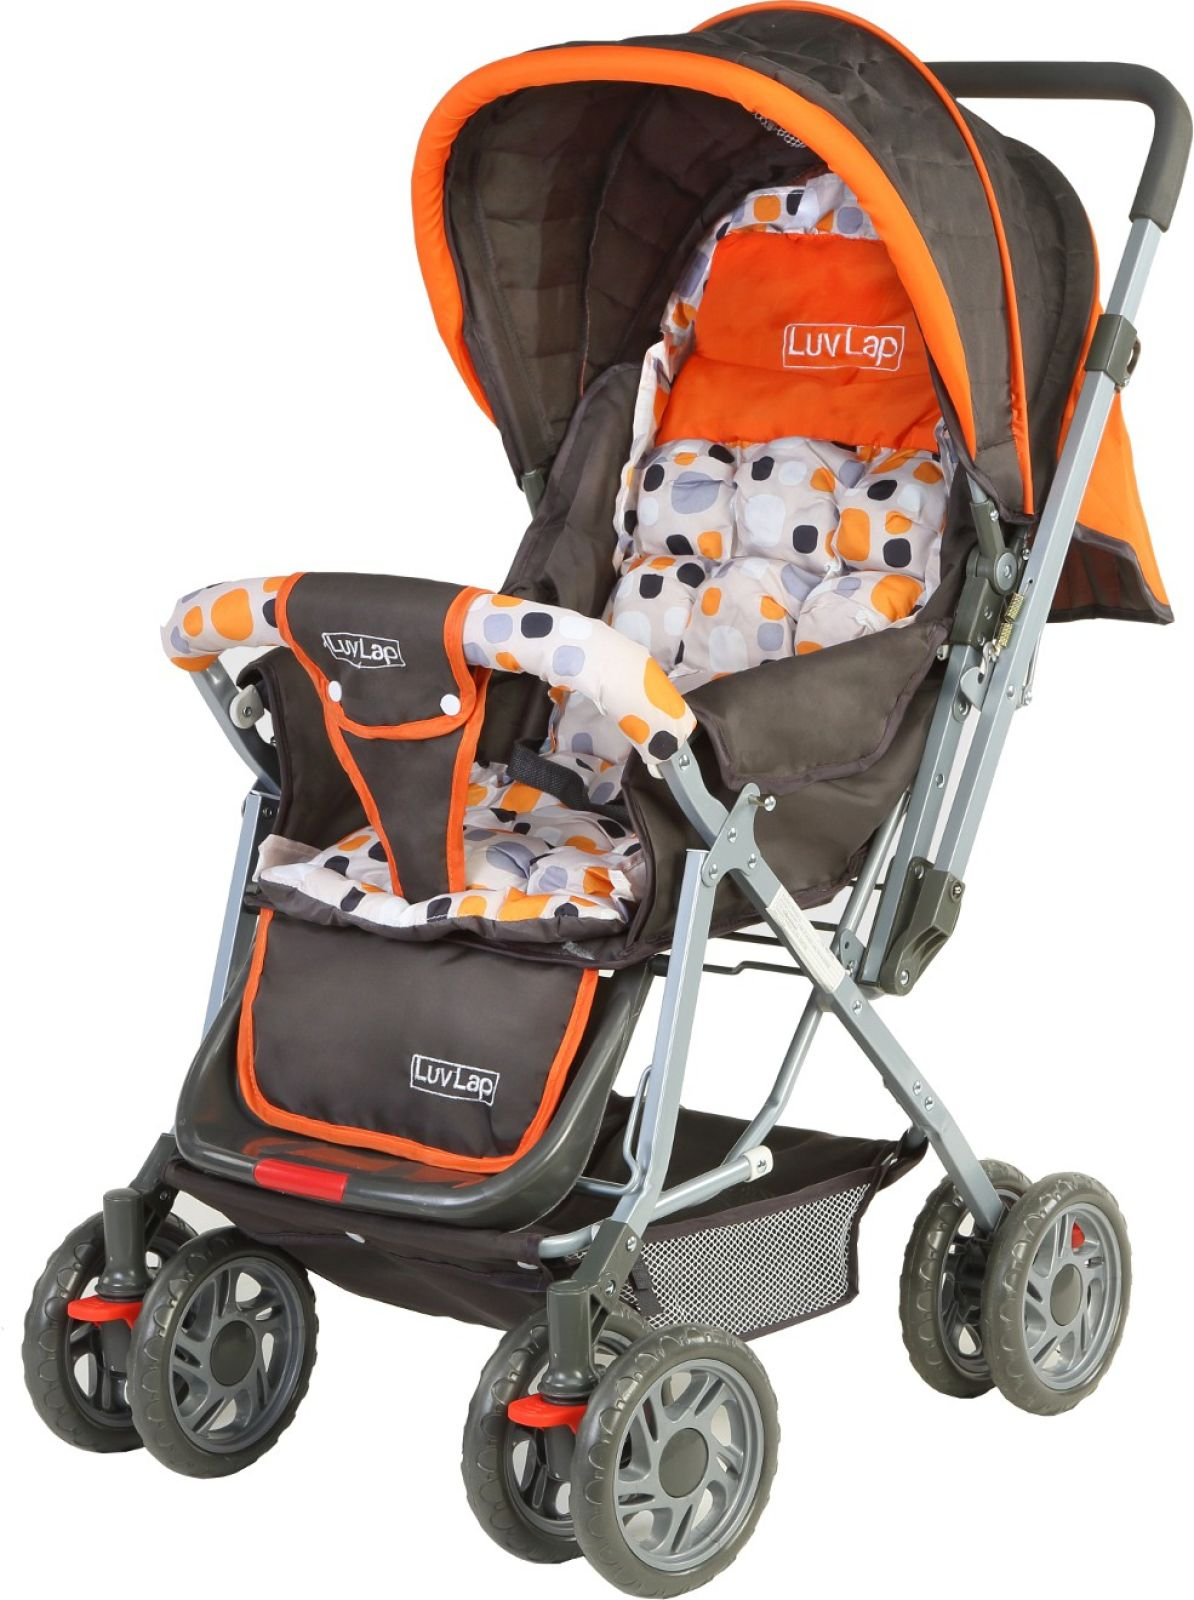 LuvLap Sunshine Baby Stroller (3, Orange)